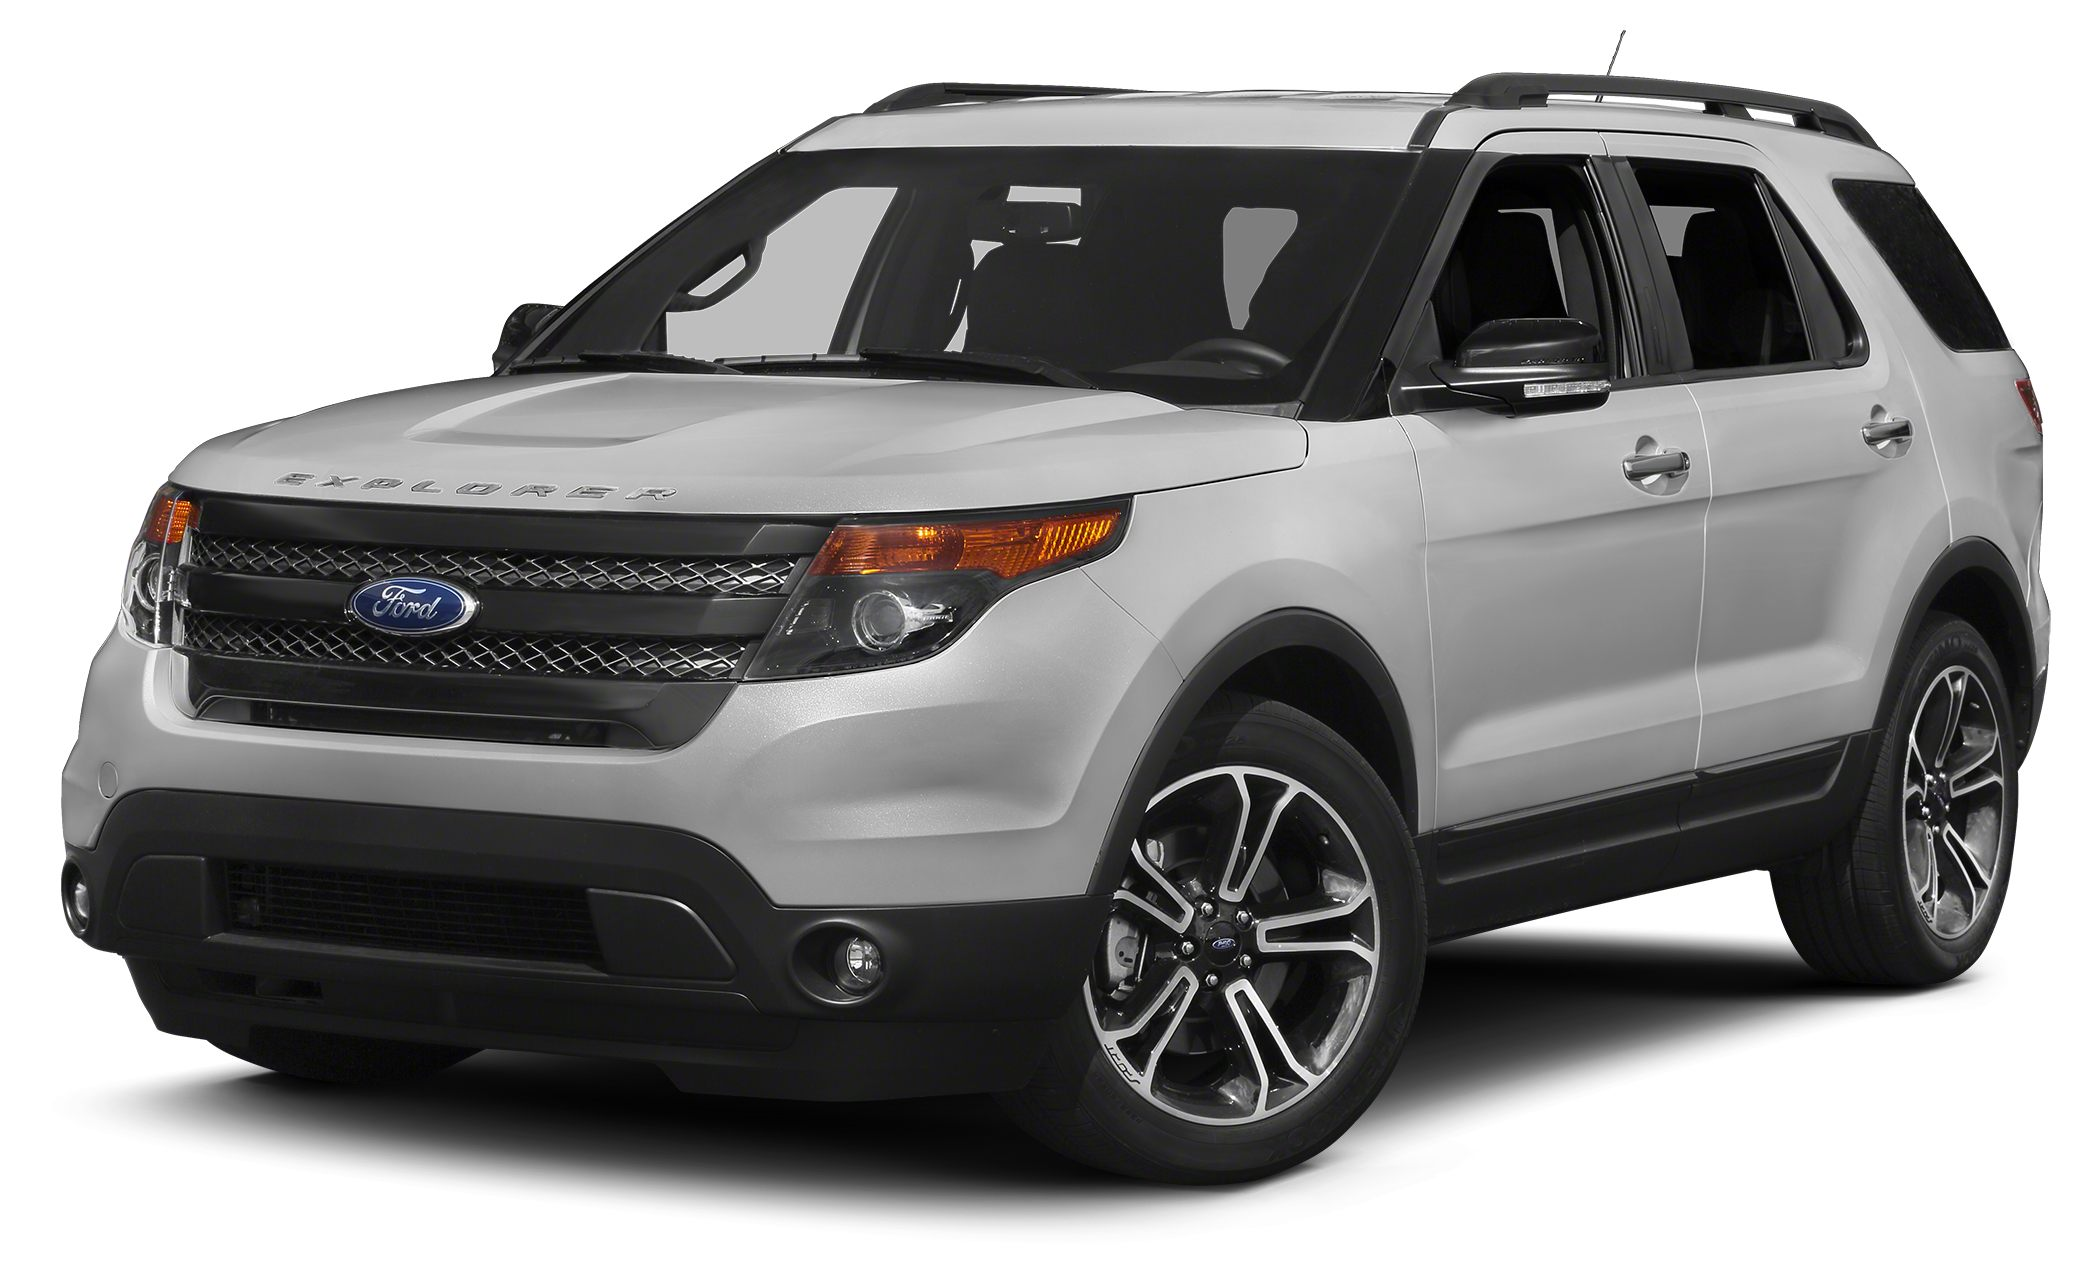 2013 Ford Explorer Sport Sport trim Spotless Dealer Certified 3rd Row Seat Heated Leather Seats